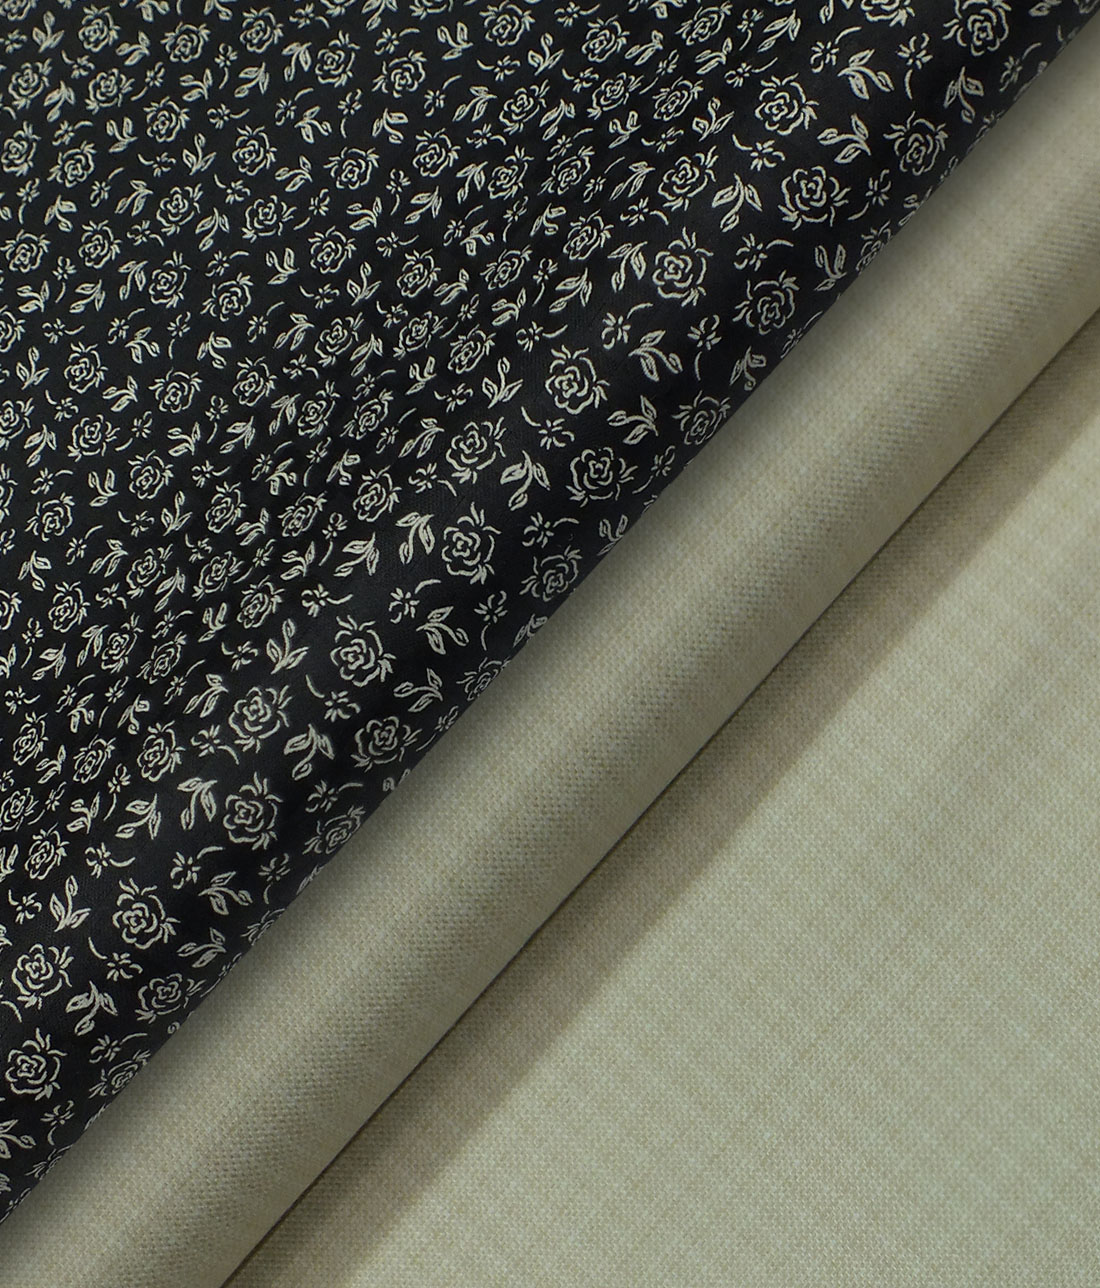 05592b754 Raymond Light Beige Self Design Trouser Fabric With Monza 100% Cotton Black  Printed Shirt Fabric (Unstitched)